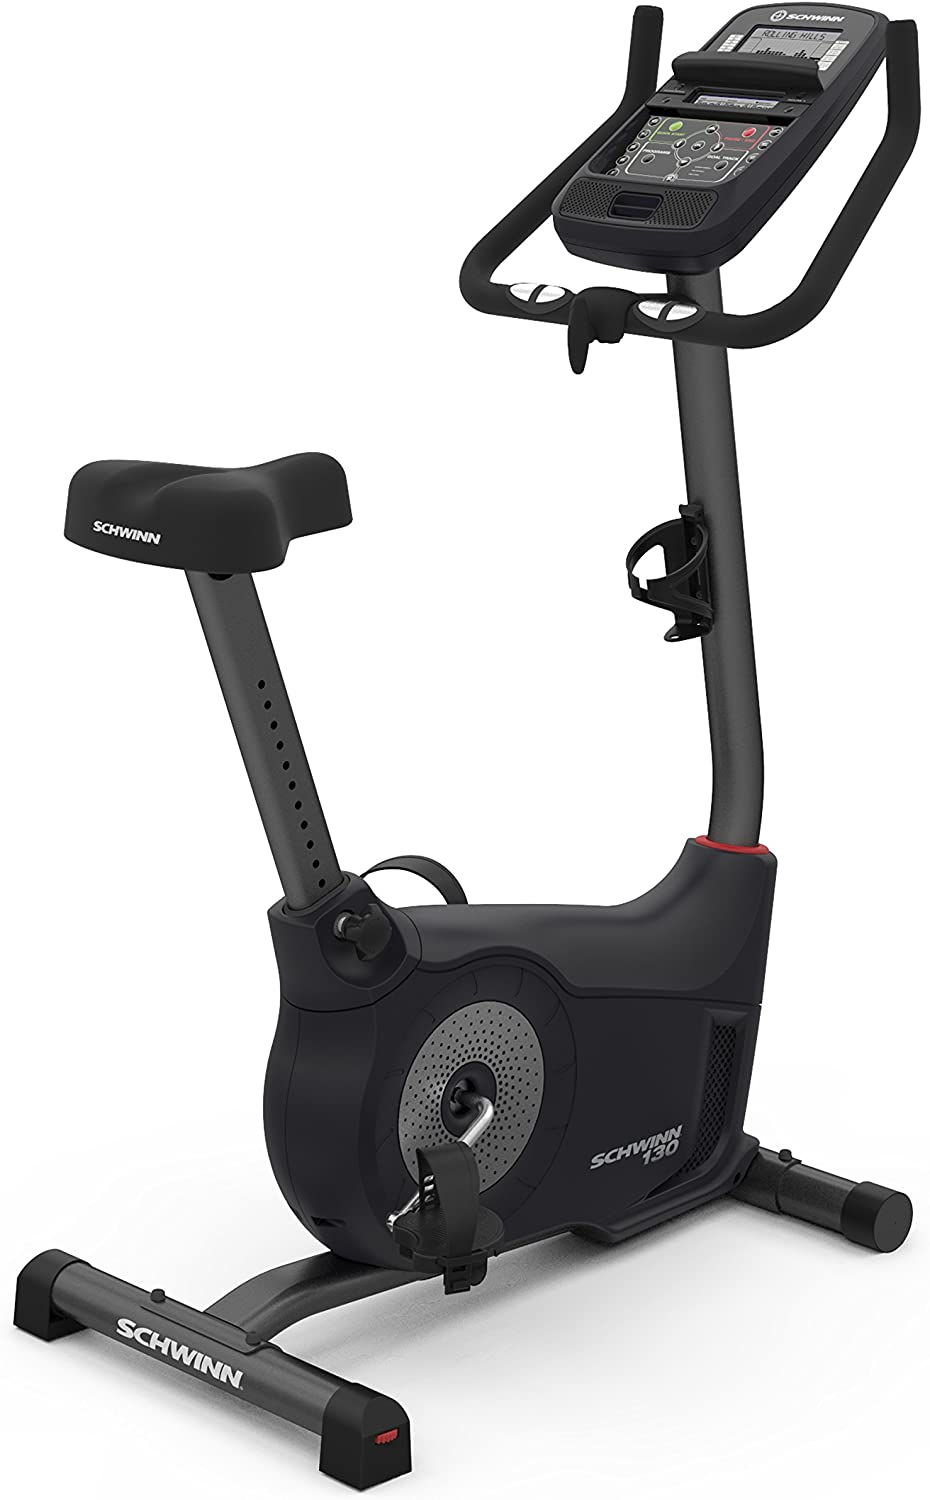 Schwinn Exercise Bike reviews of 2020 - Top 3 Model 3